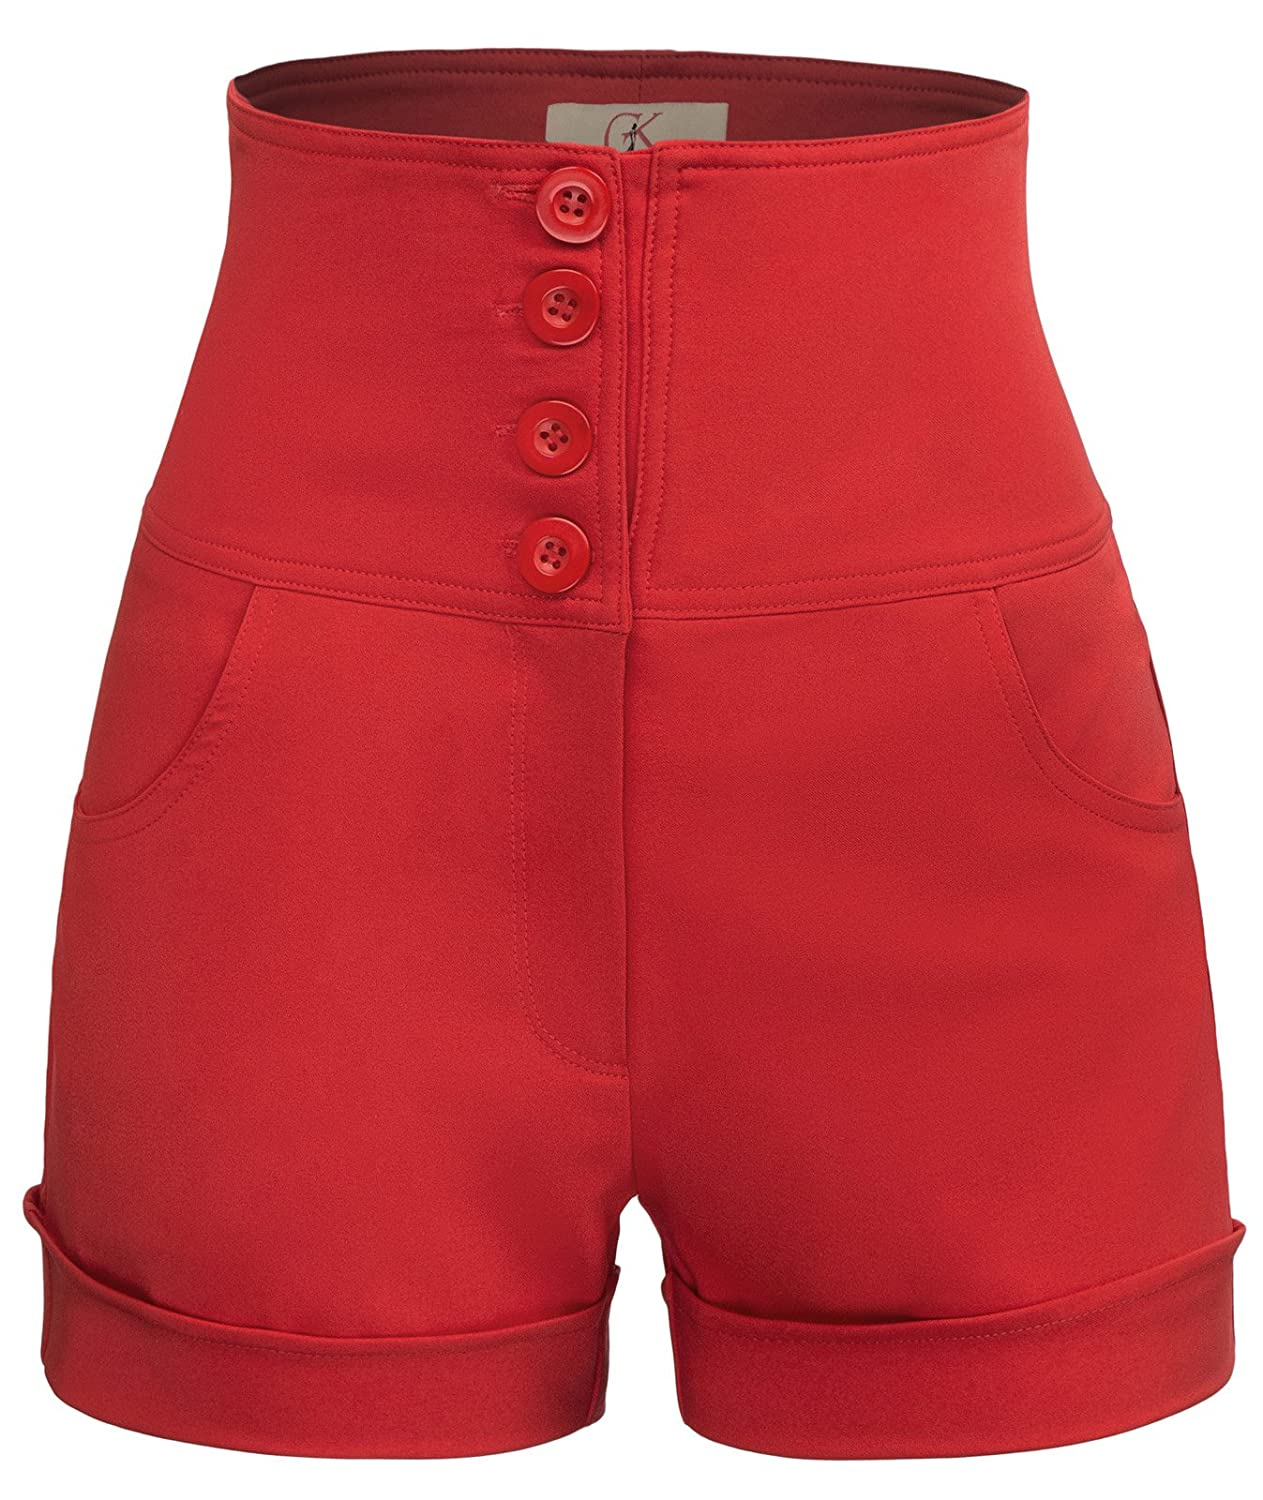 Vintage Shorts, Culottes,  Capris History GRACE KARIN Womens Retro High Waist Buttons Front Short Pants with Pockets $20.99 AT vintagedancer.com